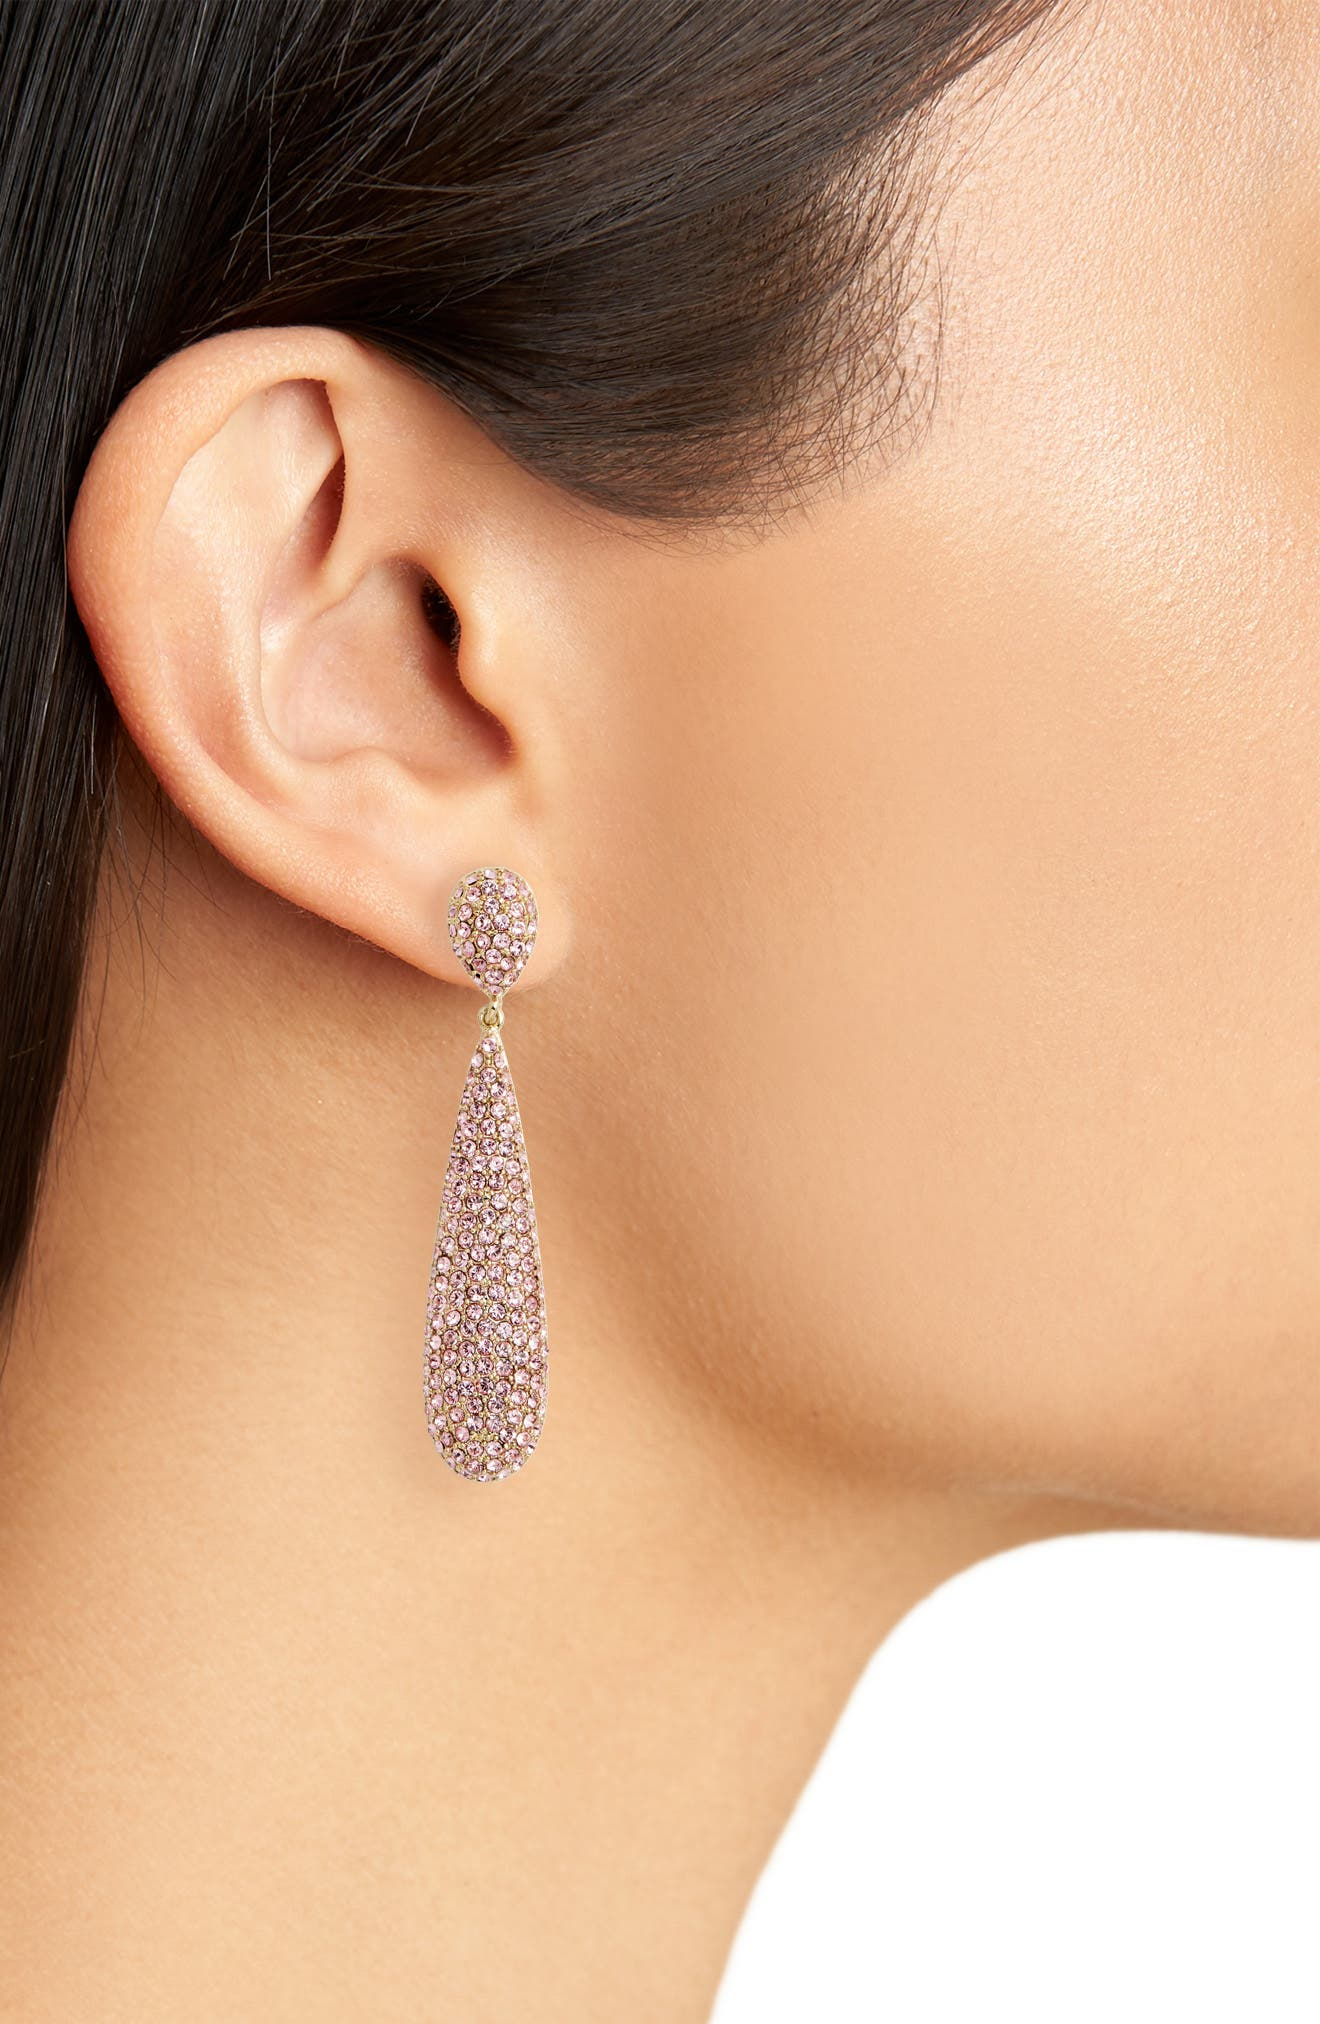 Elongated Pavé Swarovski Crystal Teardrop Earrings,                             Alternate thumbnail 2, color,                             LIGHT ROSE/ GOLD